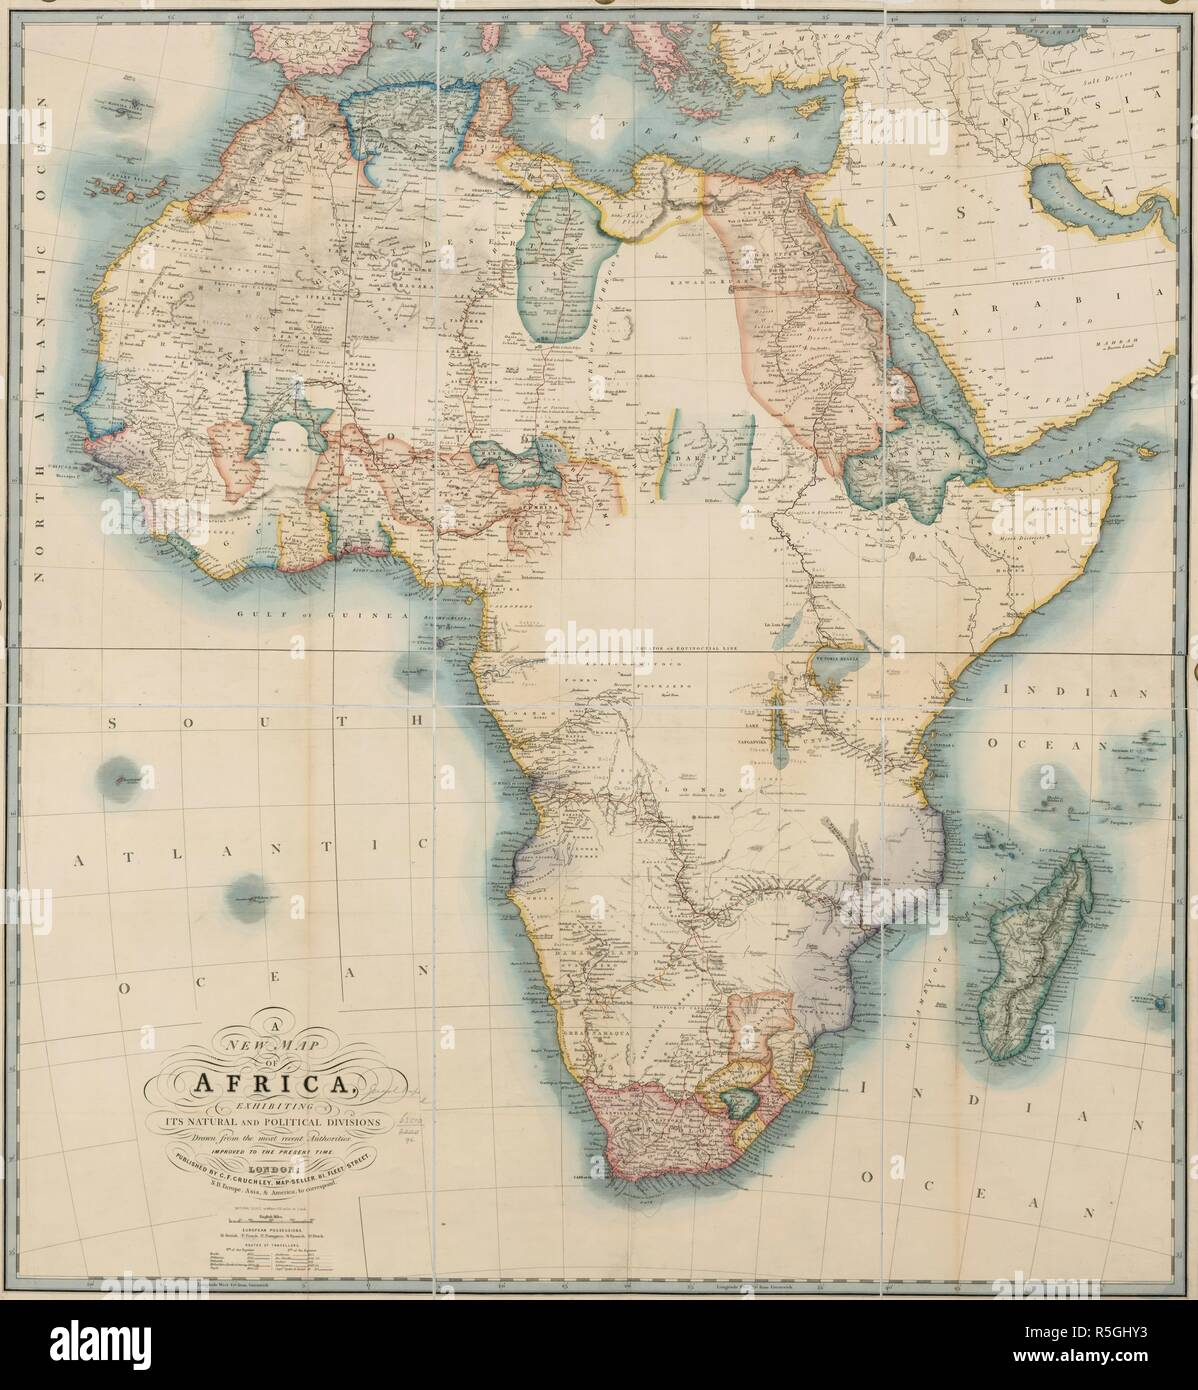 New Africa Map.New Map Of Africa Stock Photos New Map Of Africa Stock Images Alamy